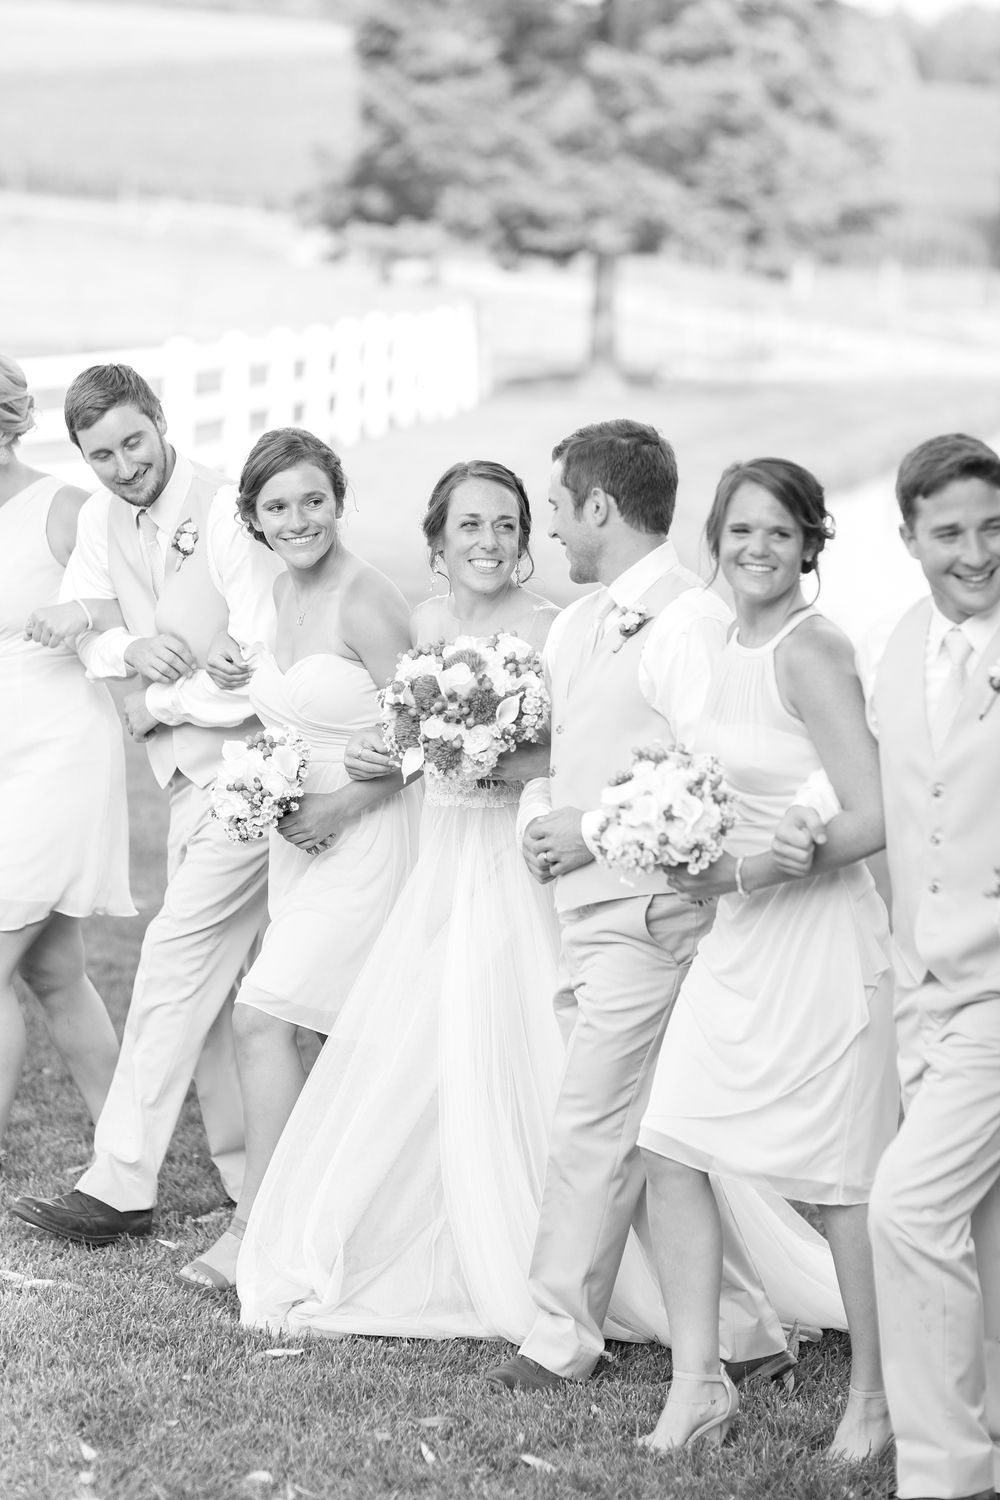 Herndon 2-Bridal Party-638_anna grace photography baltimore maryland wedding photographer pond view farm photo.jpg